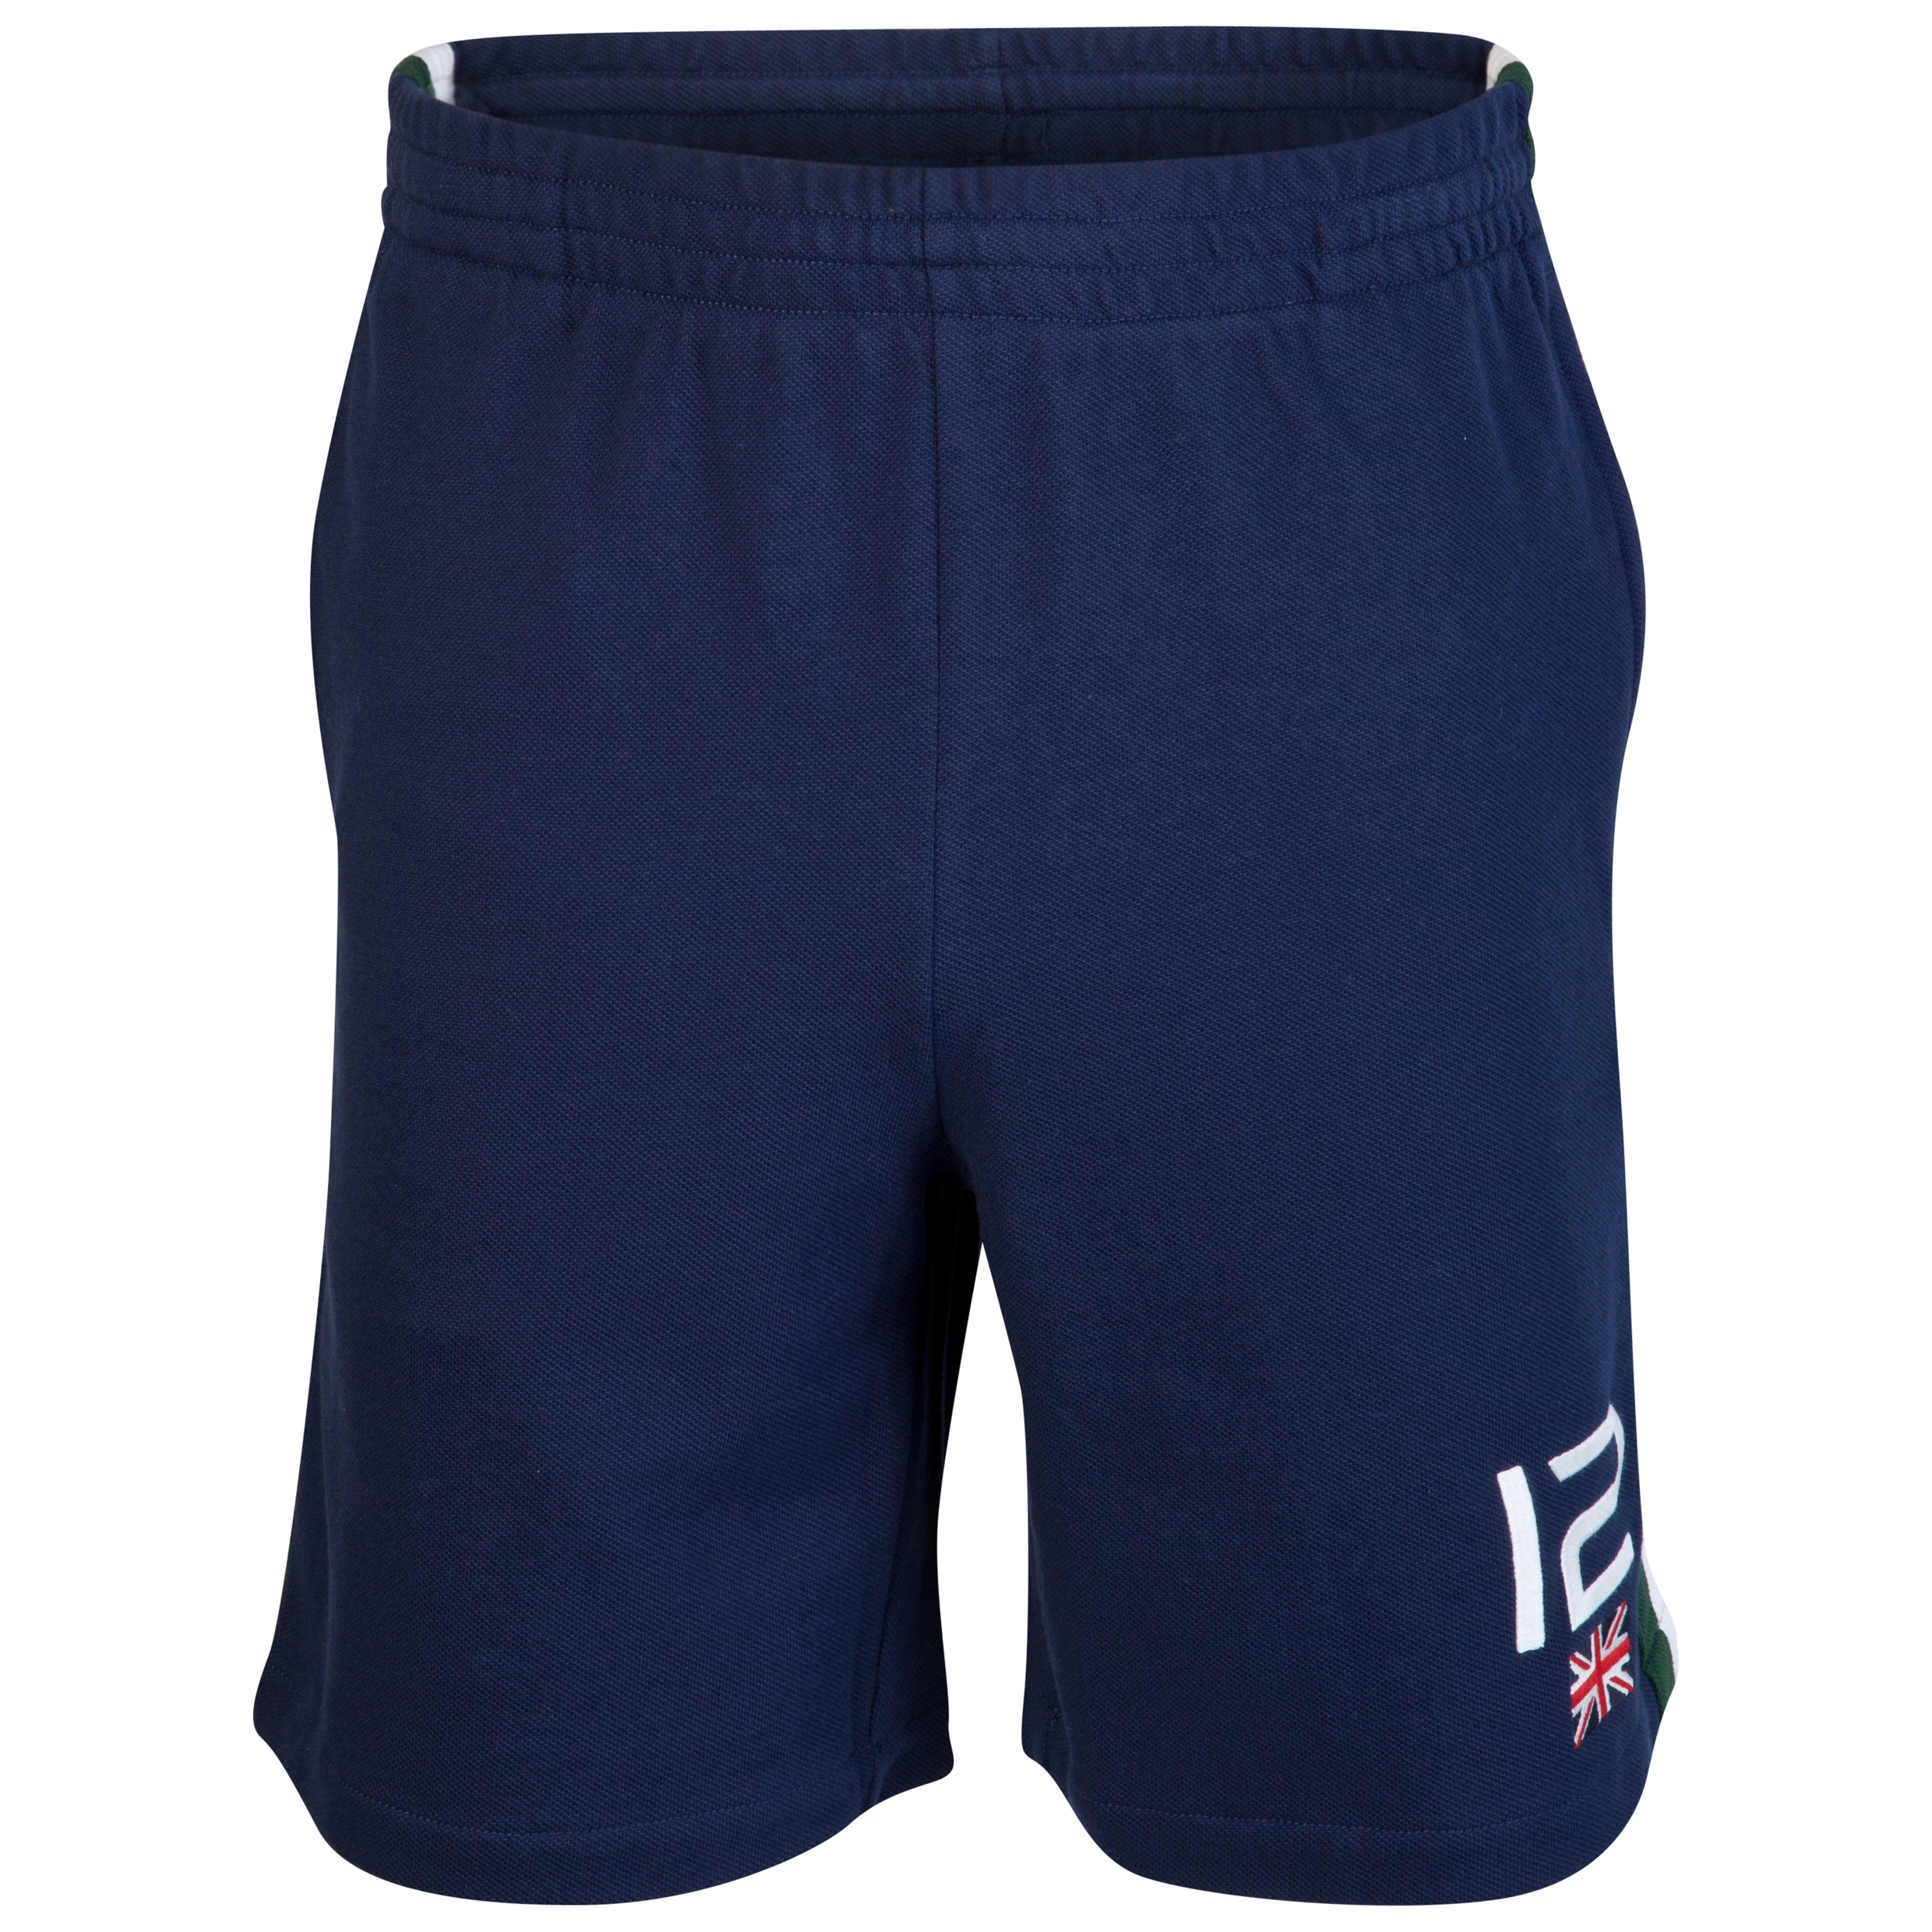 Polo Ralph Lauren Wimbledon Shorts - French Navy